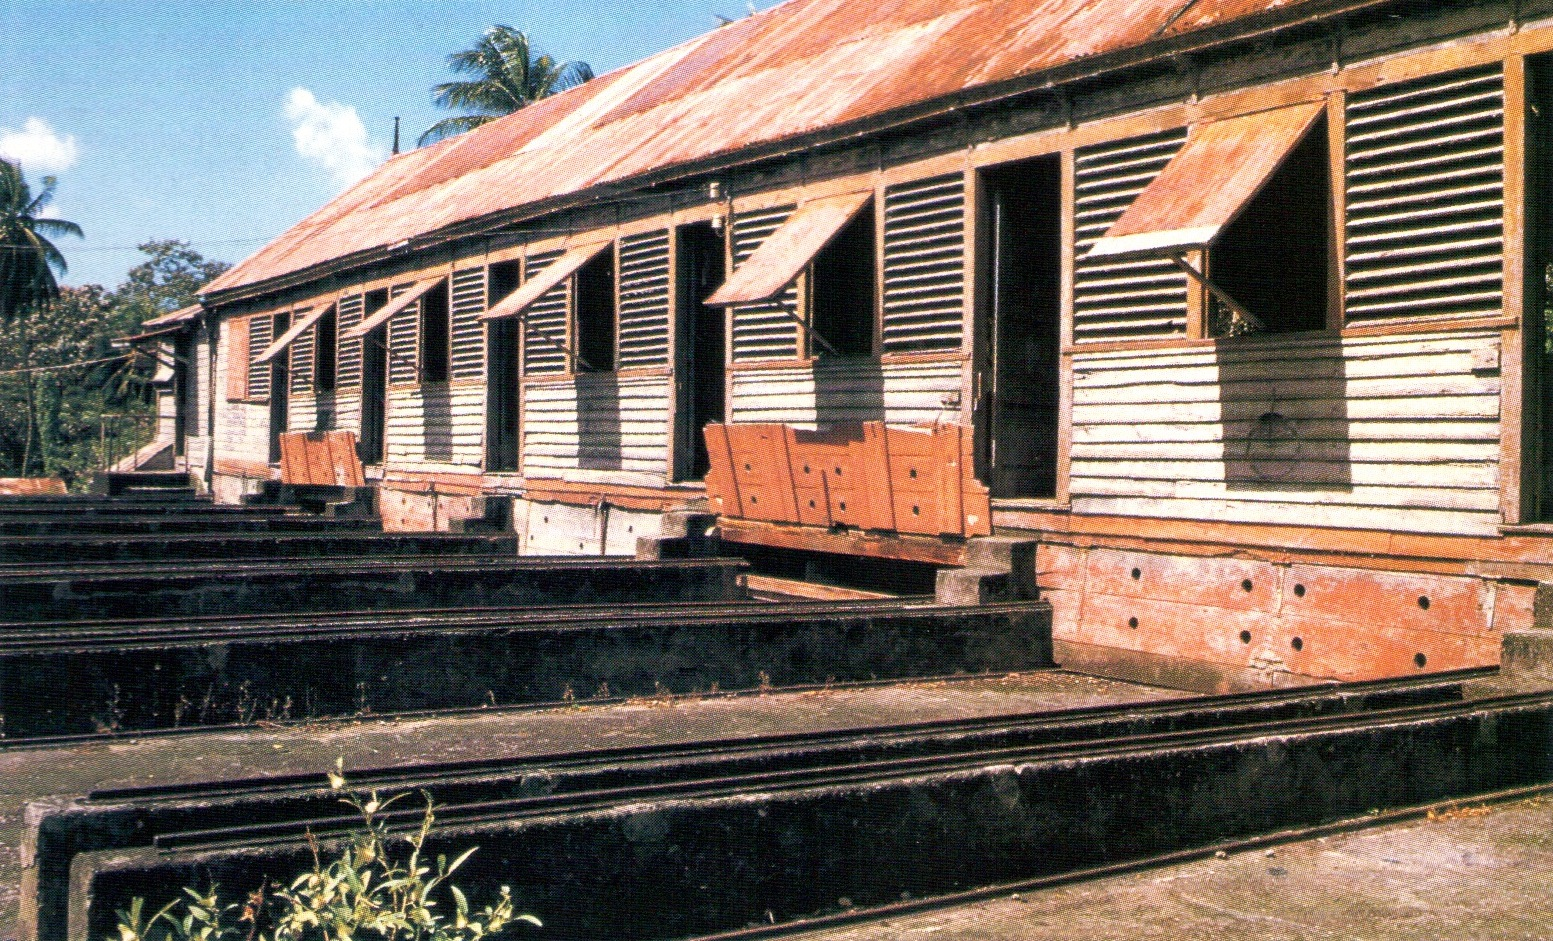 At the Dougaldston processing house, rails are used to roll out the nutmeg drying rocks. Photograph by Edward Barrow.